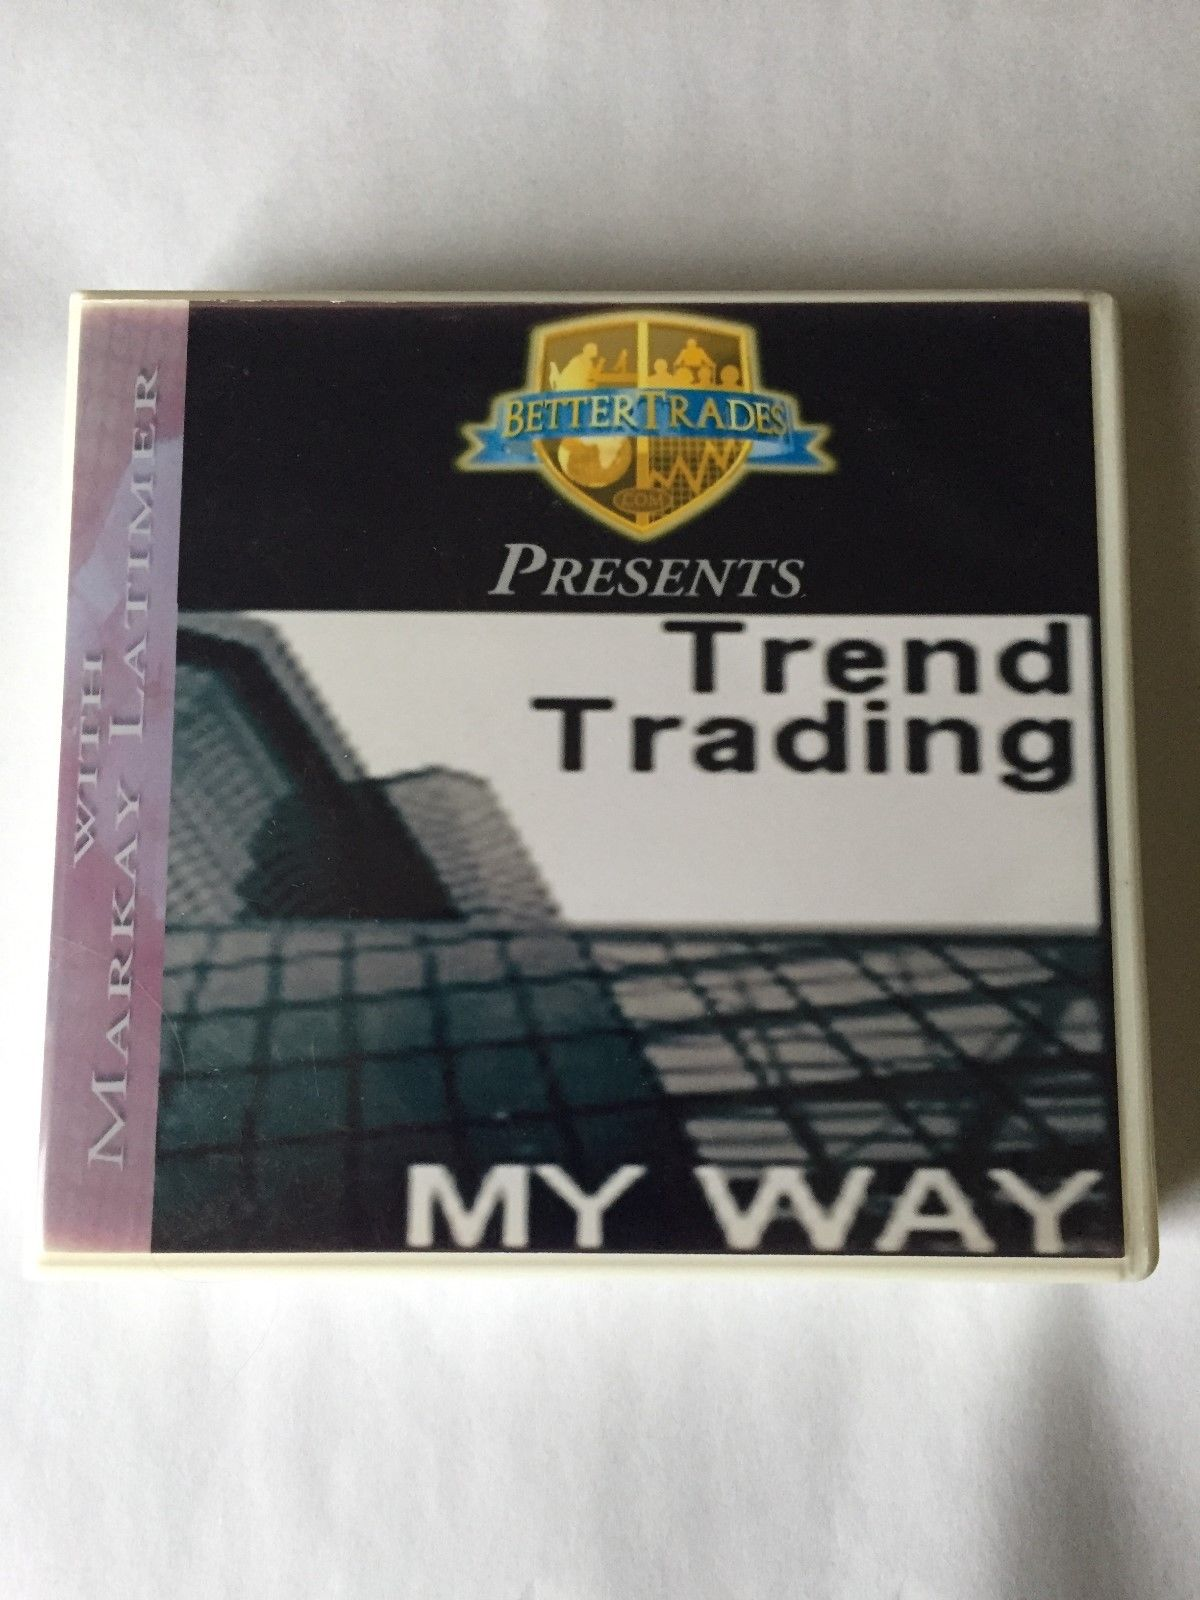 Trend Trading My Way by stock and option trader Markay Latimer